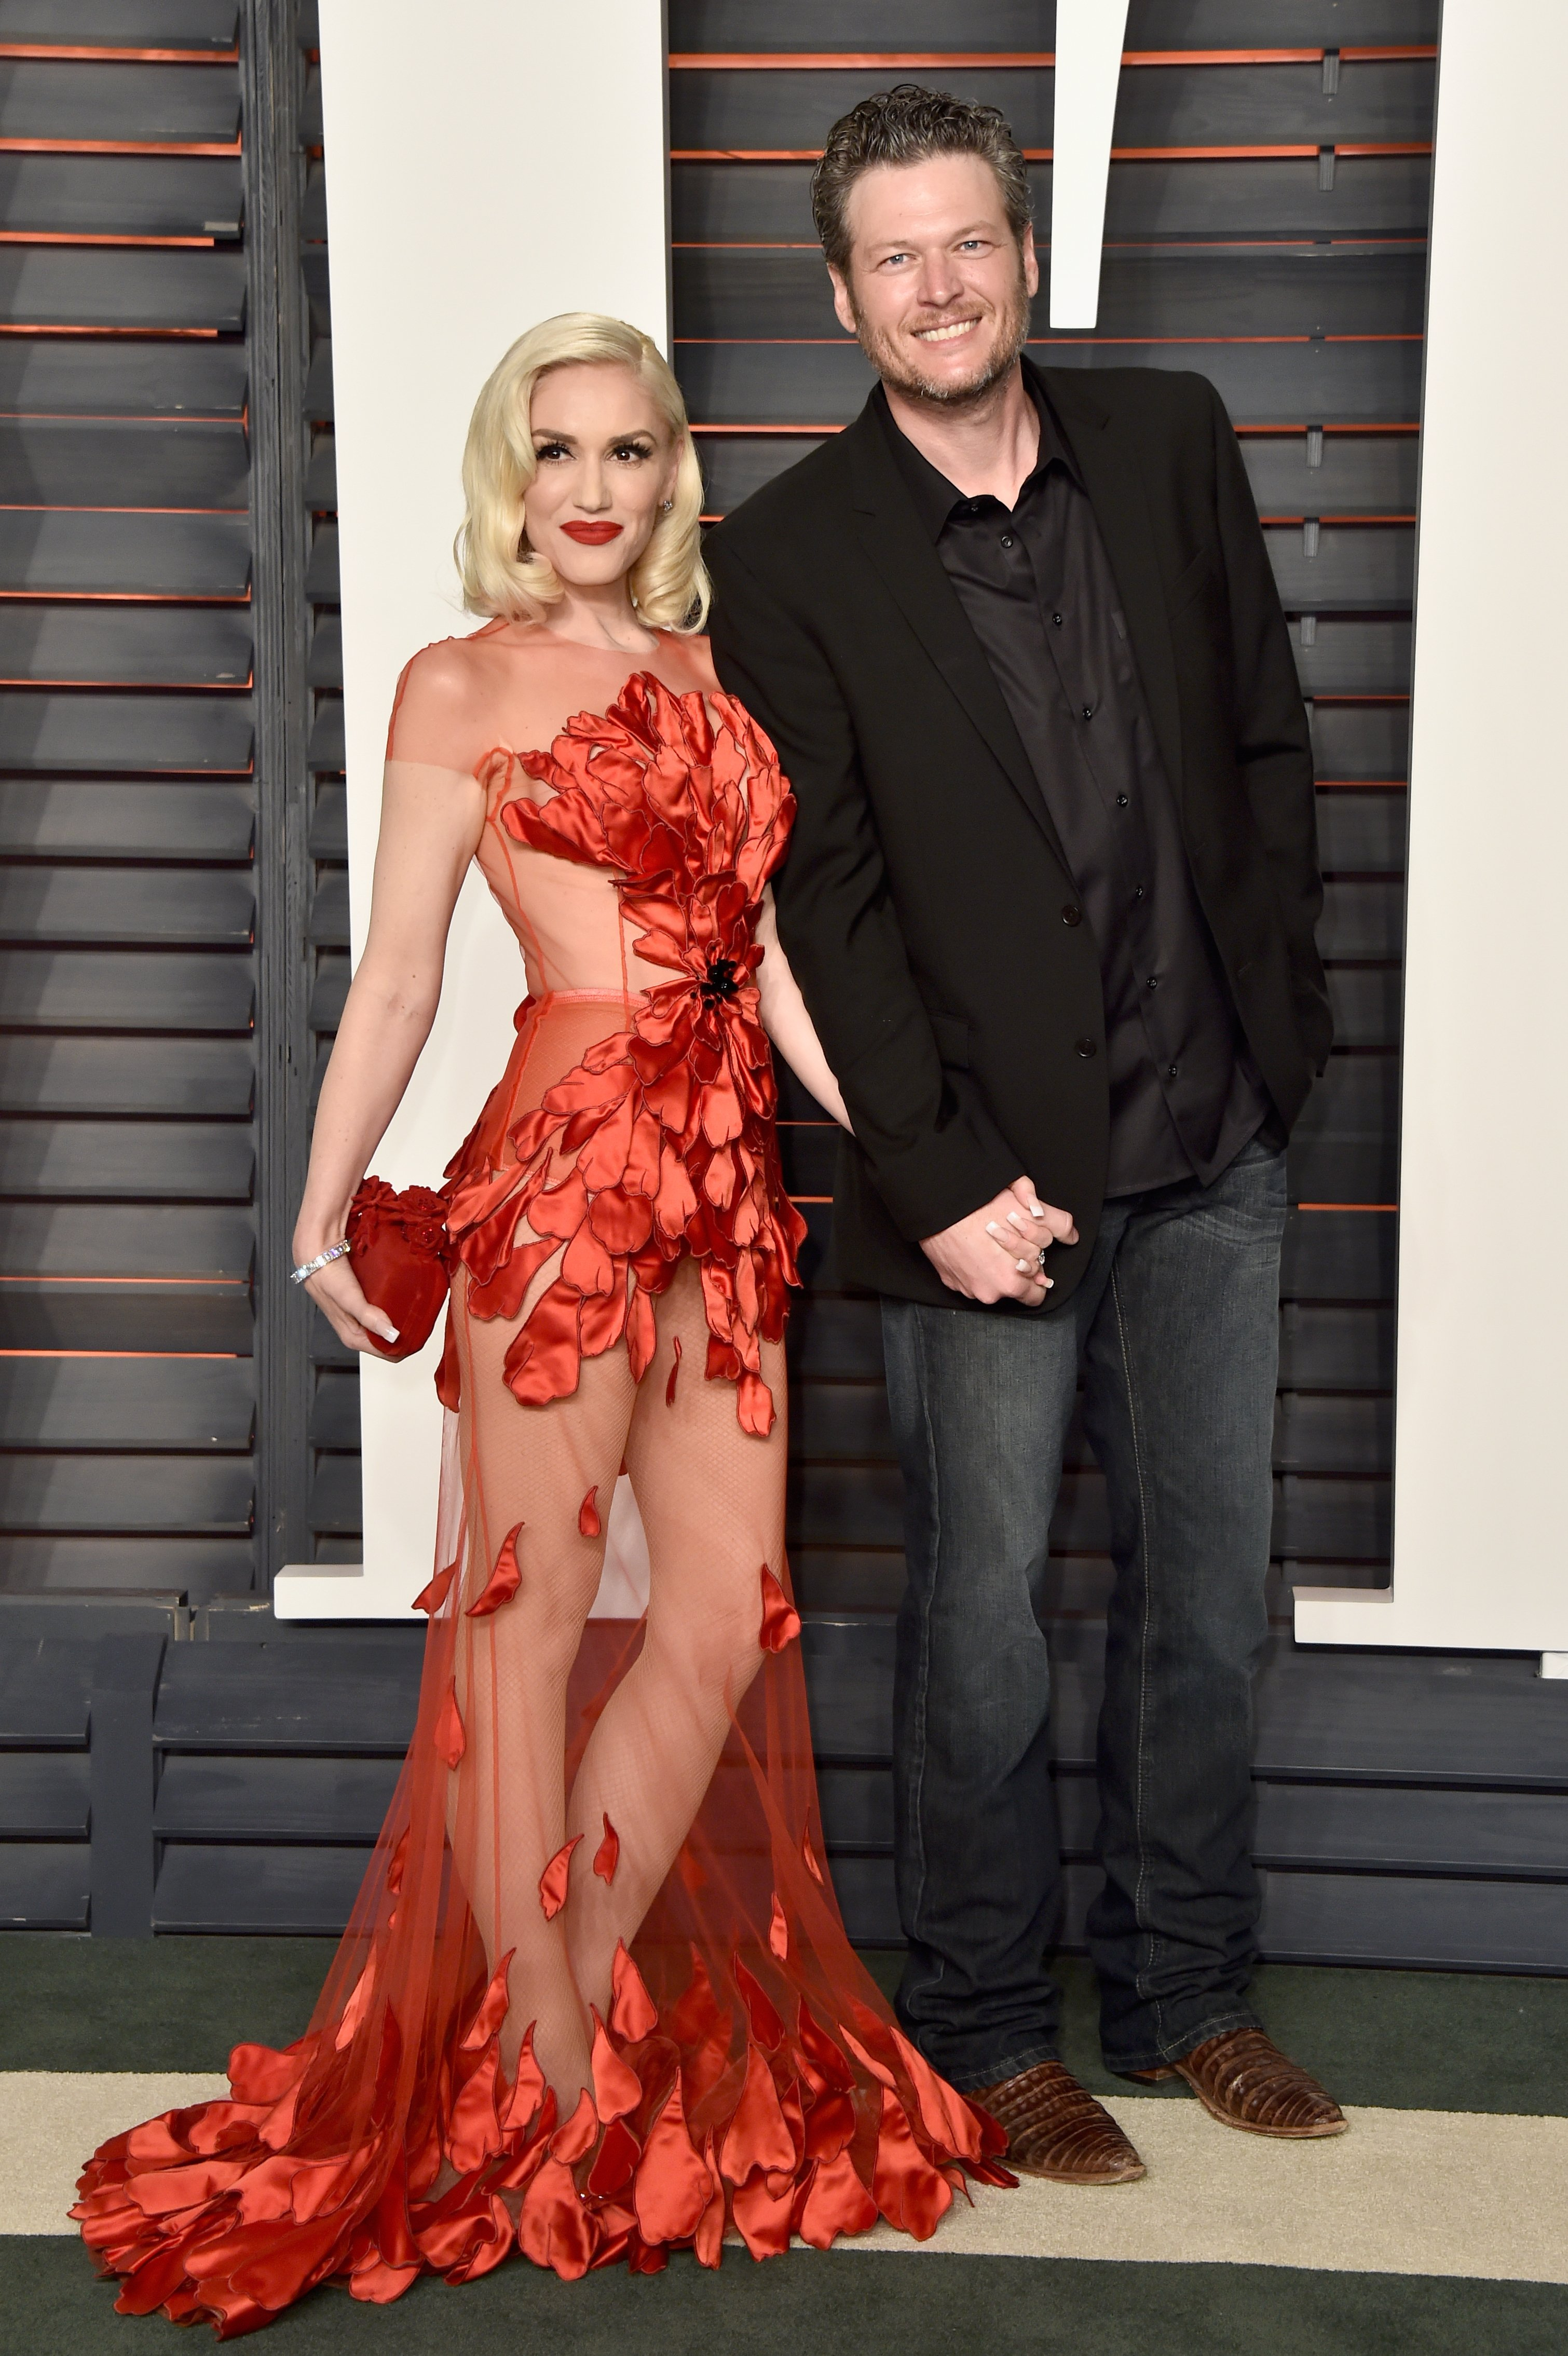 Blake Shelton and Gwen Stefani. | Source: Getty Images